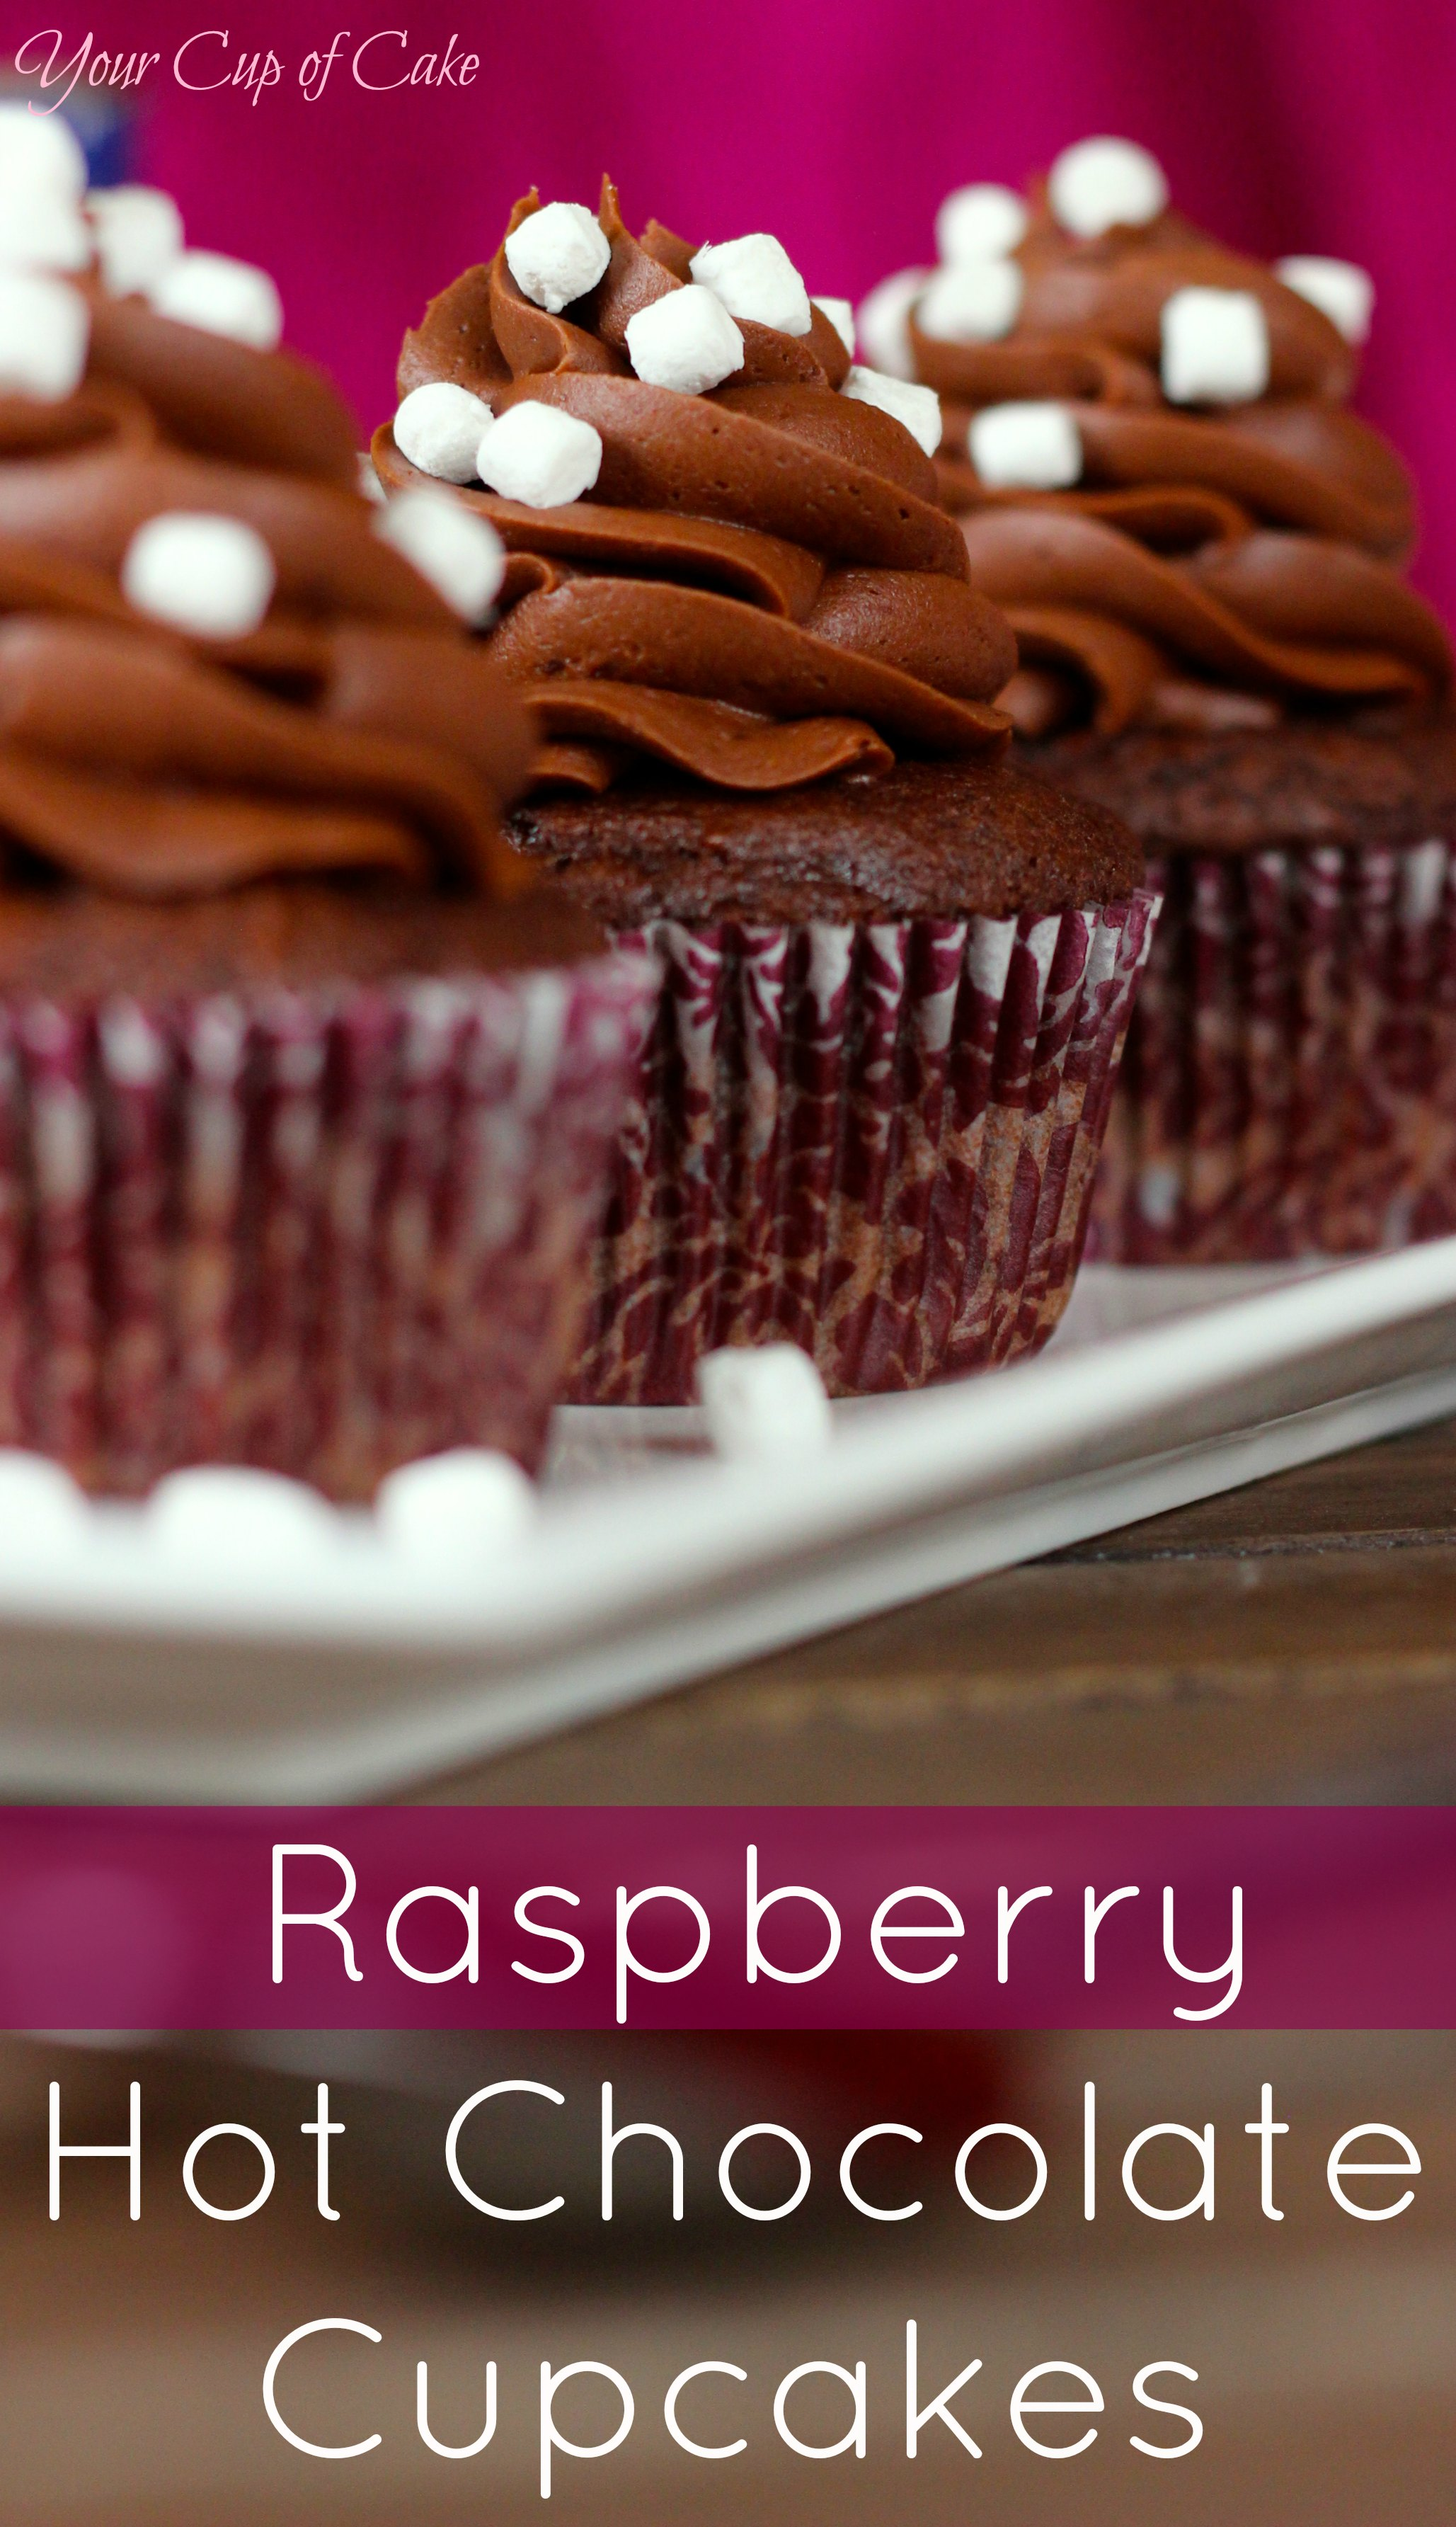 Raspberry Hot Chocolate Cupcakes